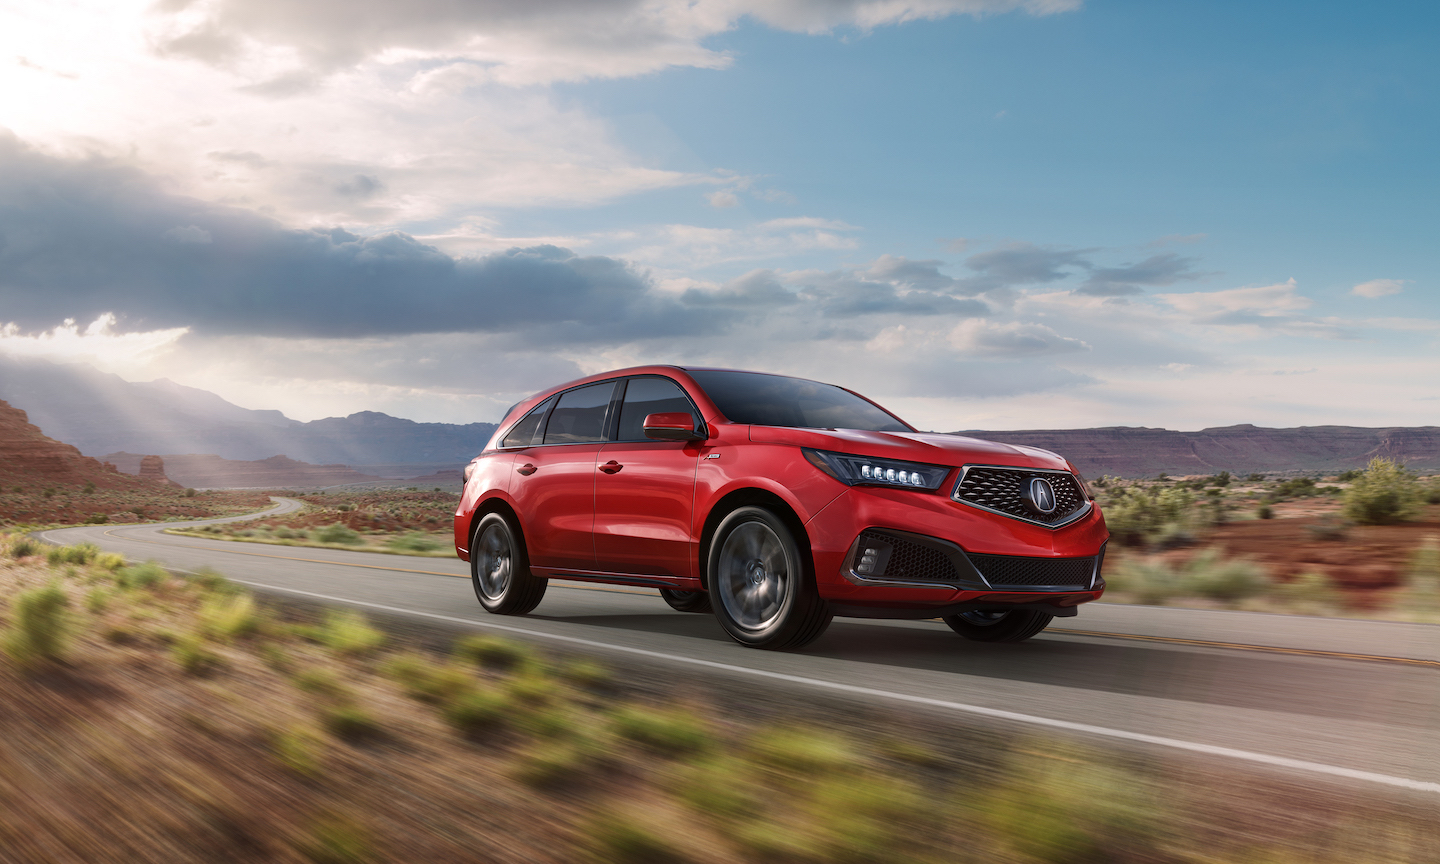 The 2019 Acura Power Roundup